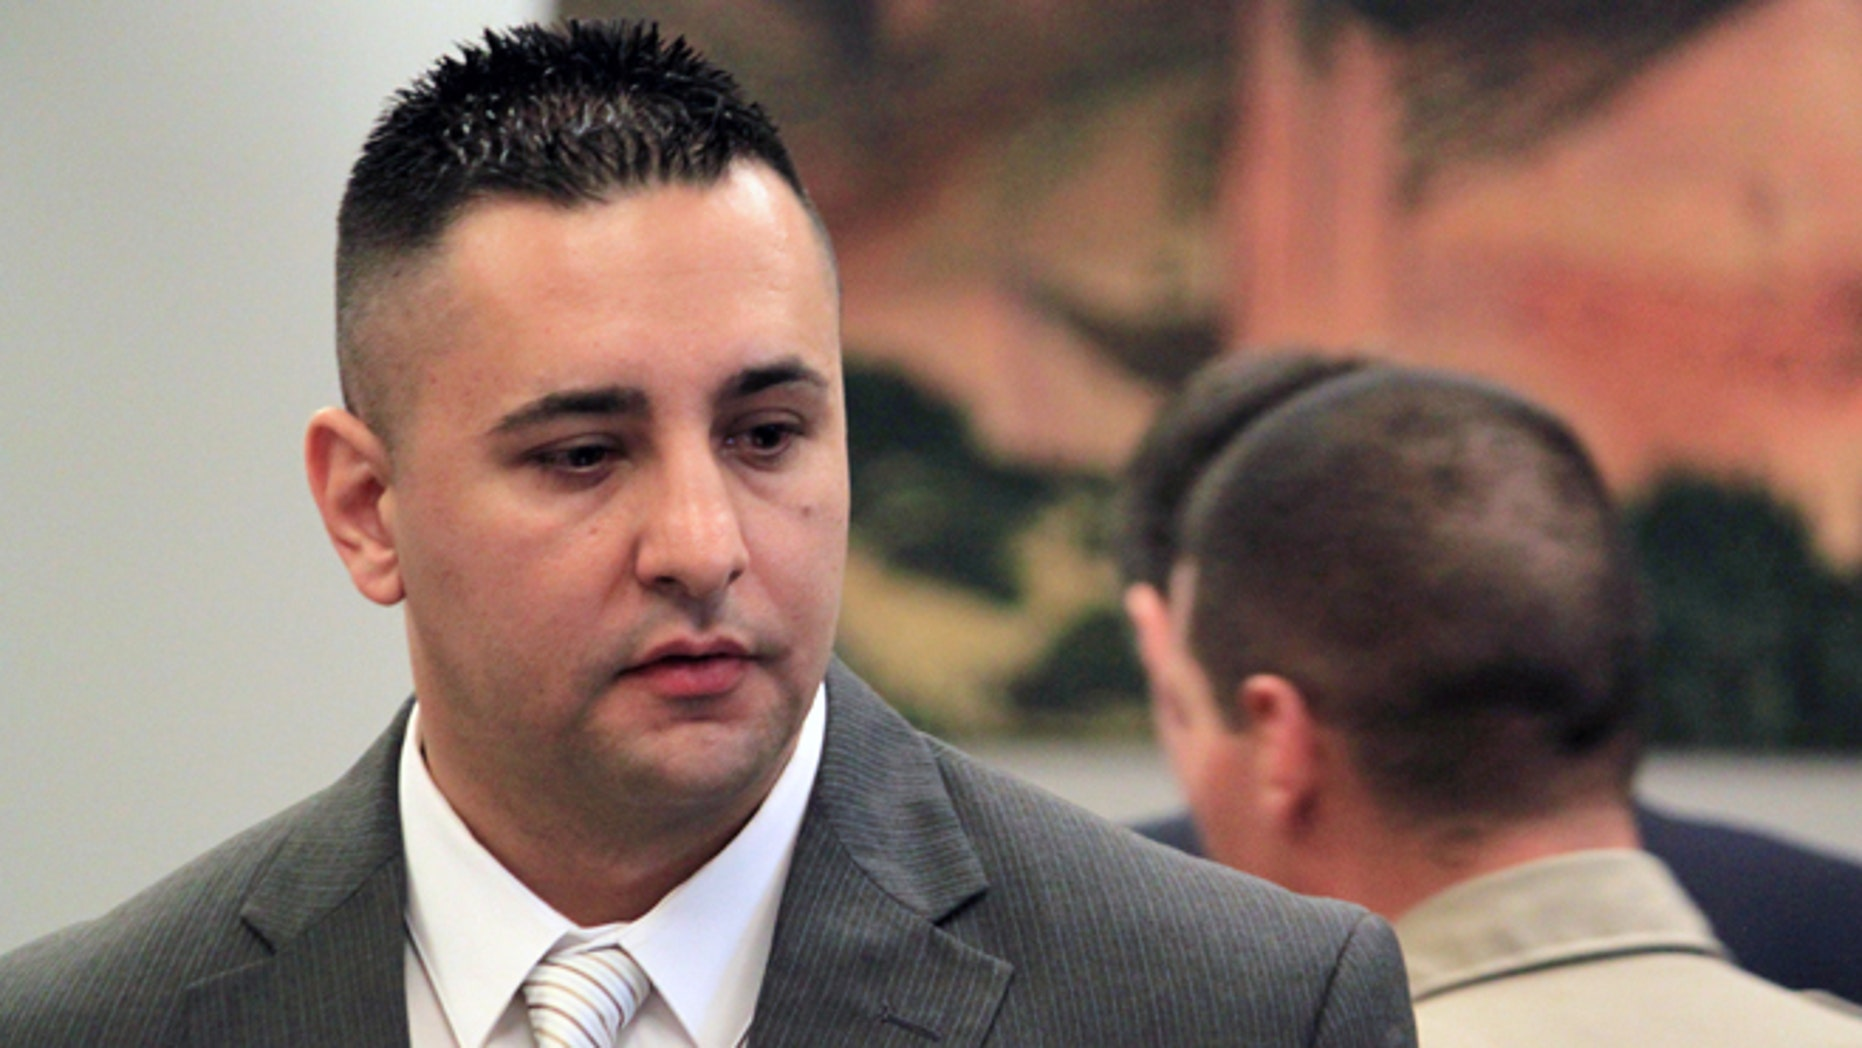 June 10, 2013: Former Albuquerque Police Officer Levi Chavez prepares to leave the courtroom following opening statements in his trial in Bernalillo, N.M. (AP/Susan Montoya Bryan, File)